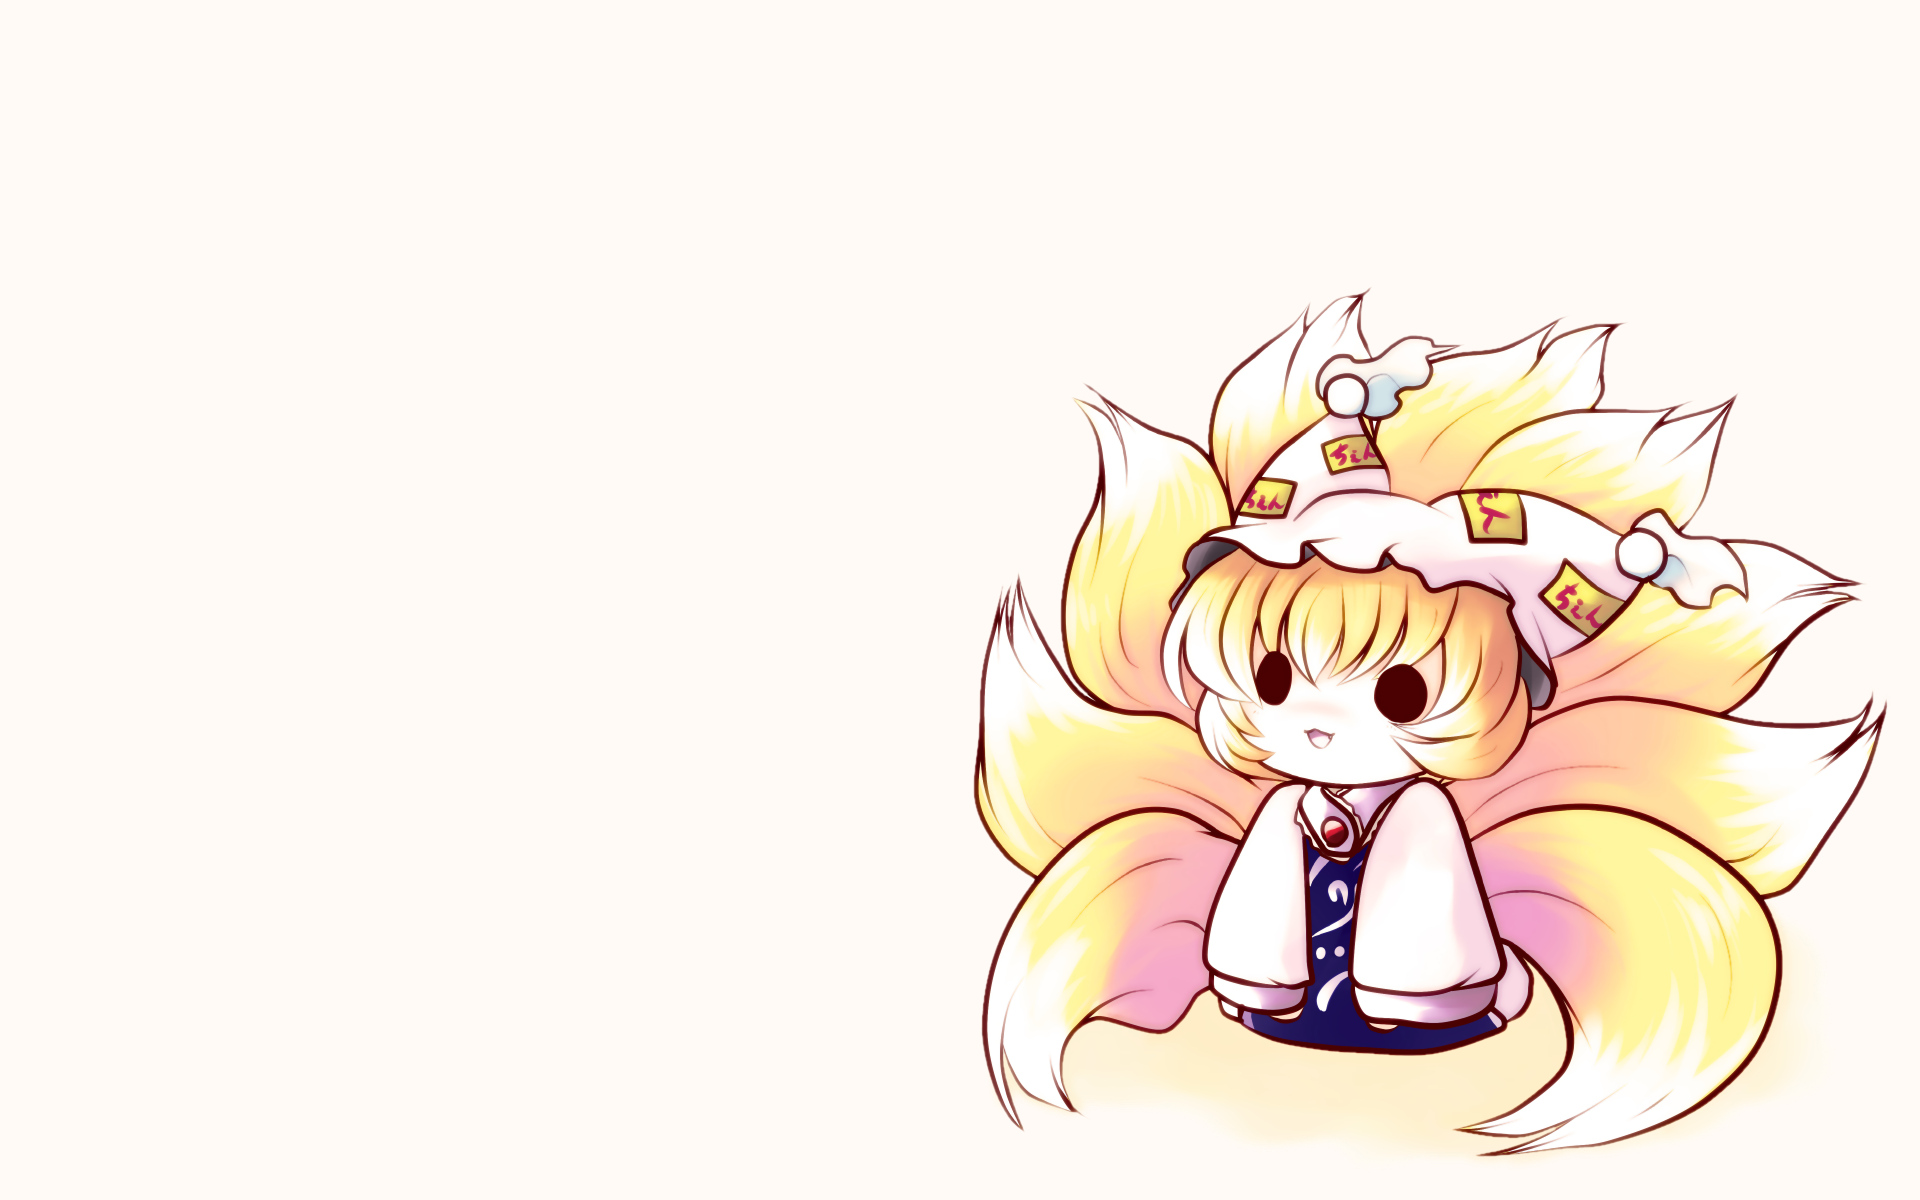 animal_ears cat_smile chibi fang foxgirl hat multiple_tails tail touhou white yakumo_ran yume_shokunin